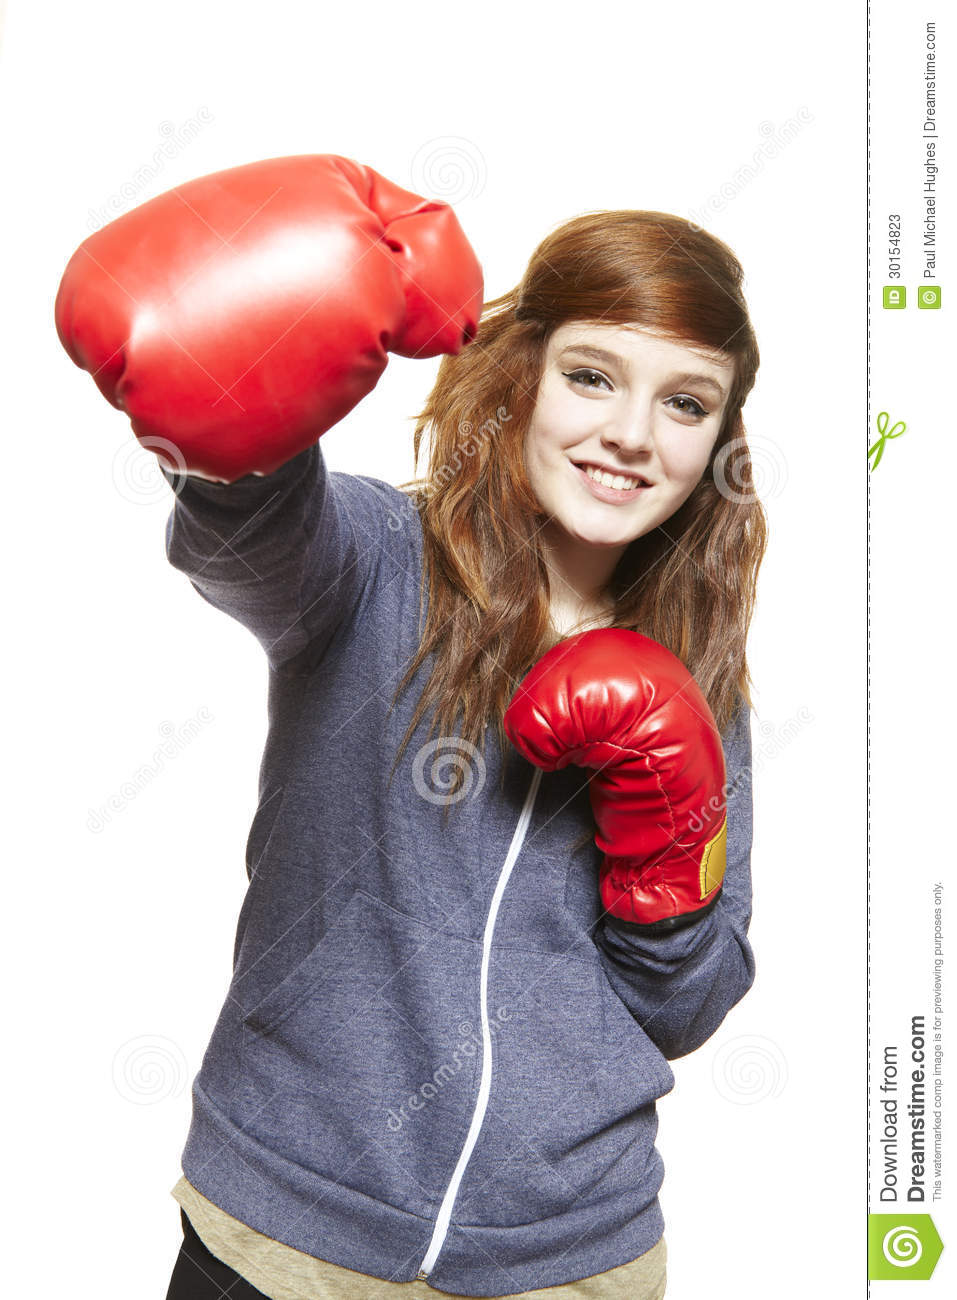 Young teenage girl wearing boxing gloves smiling